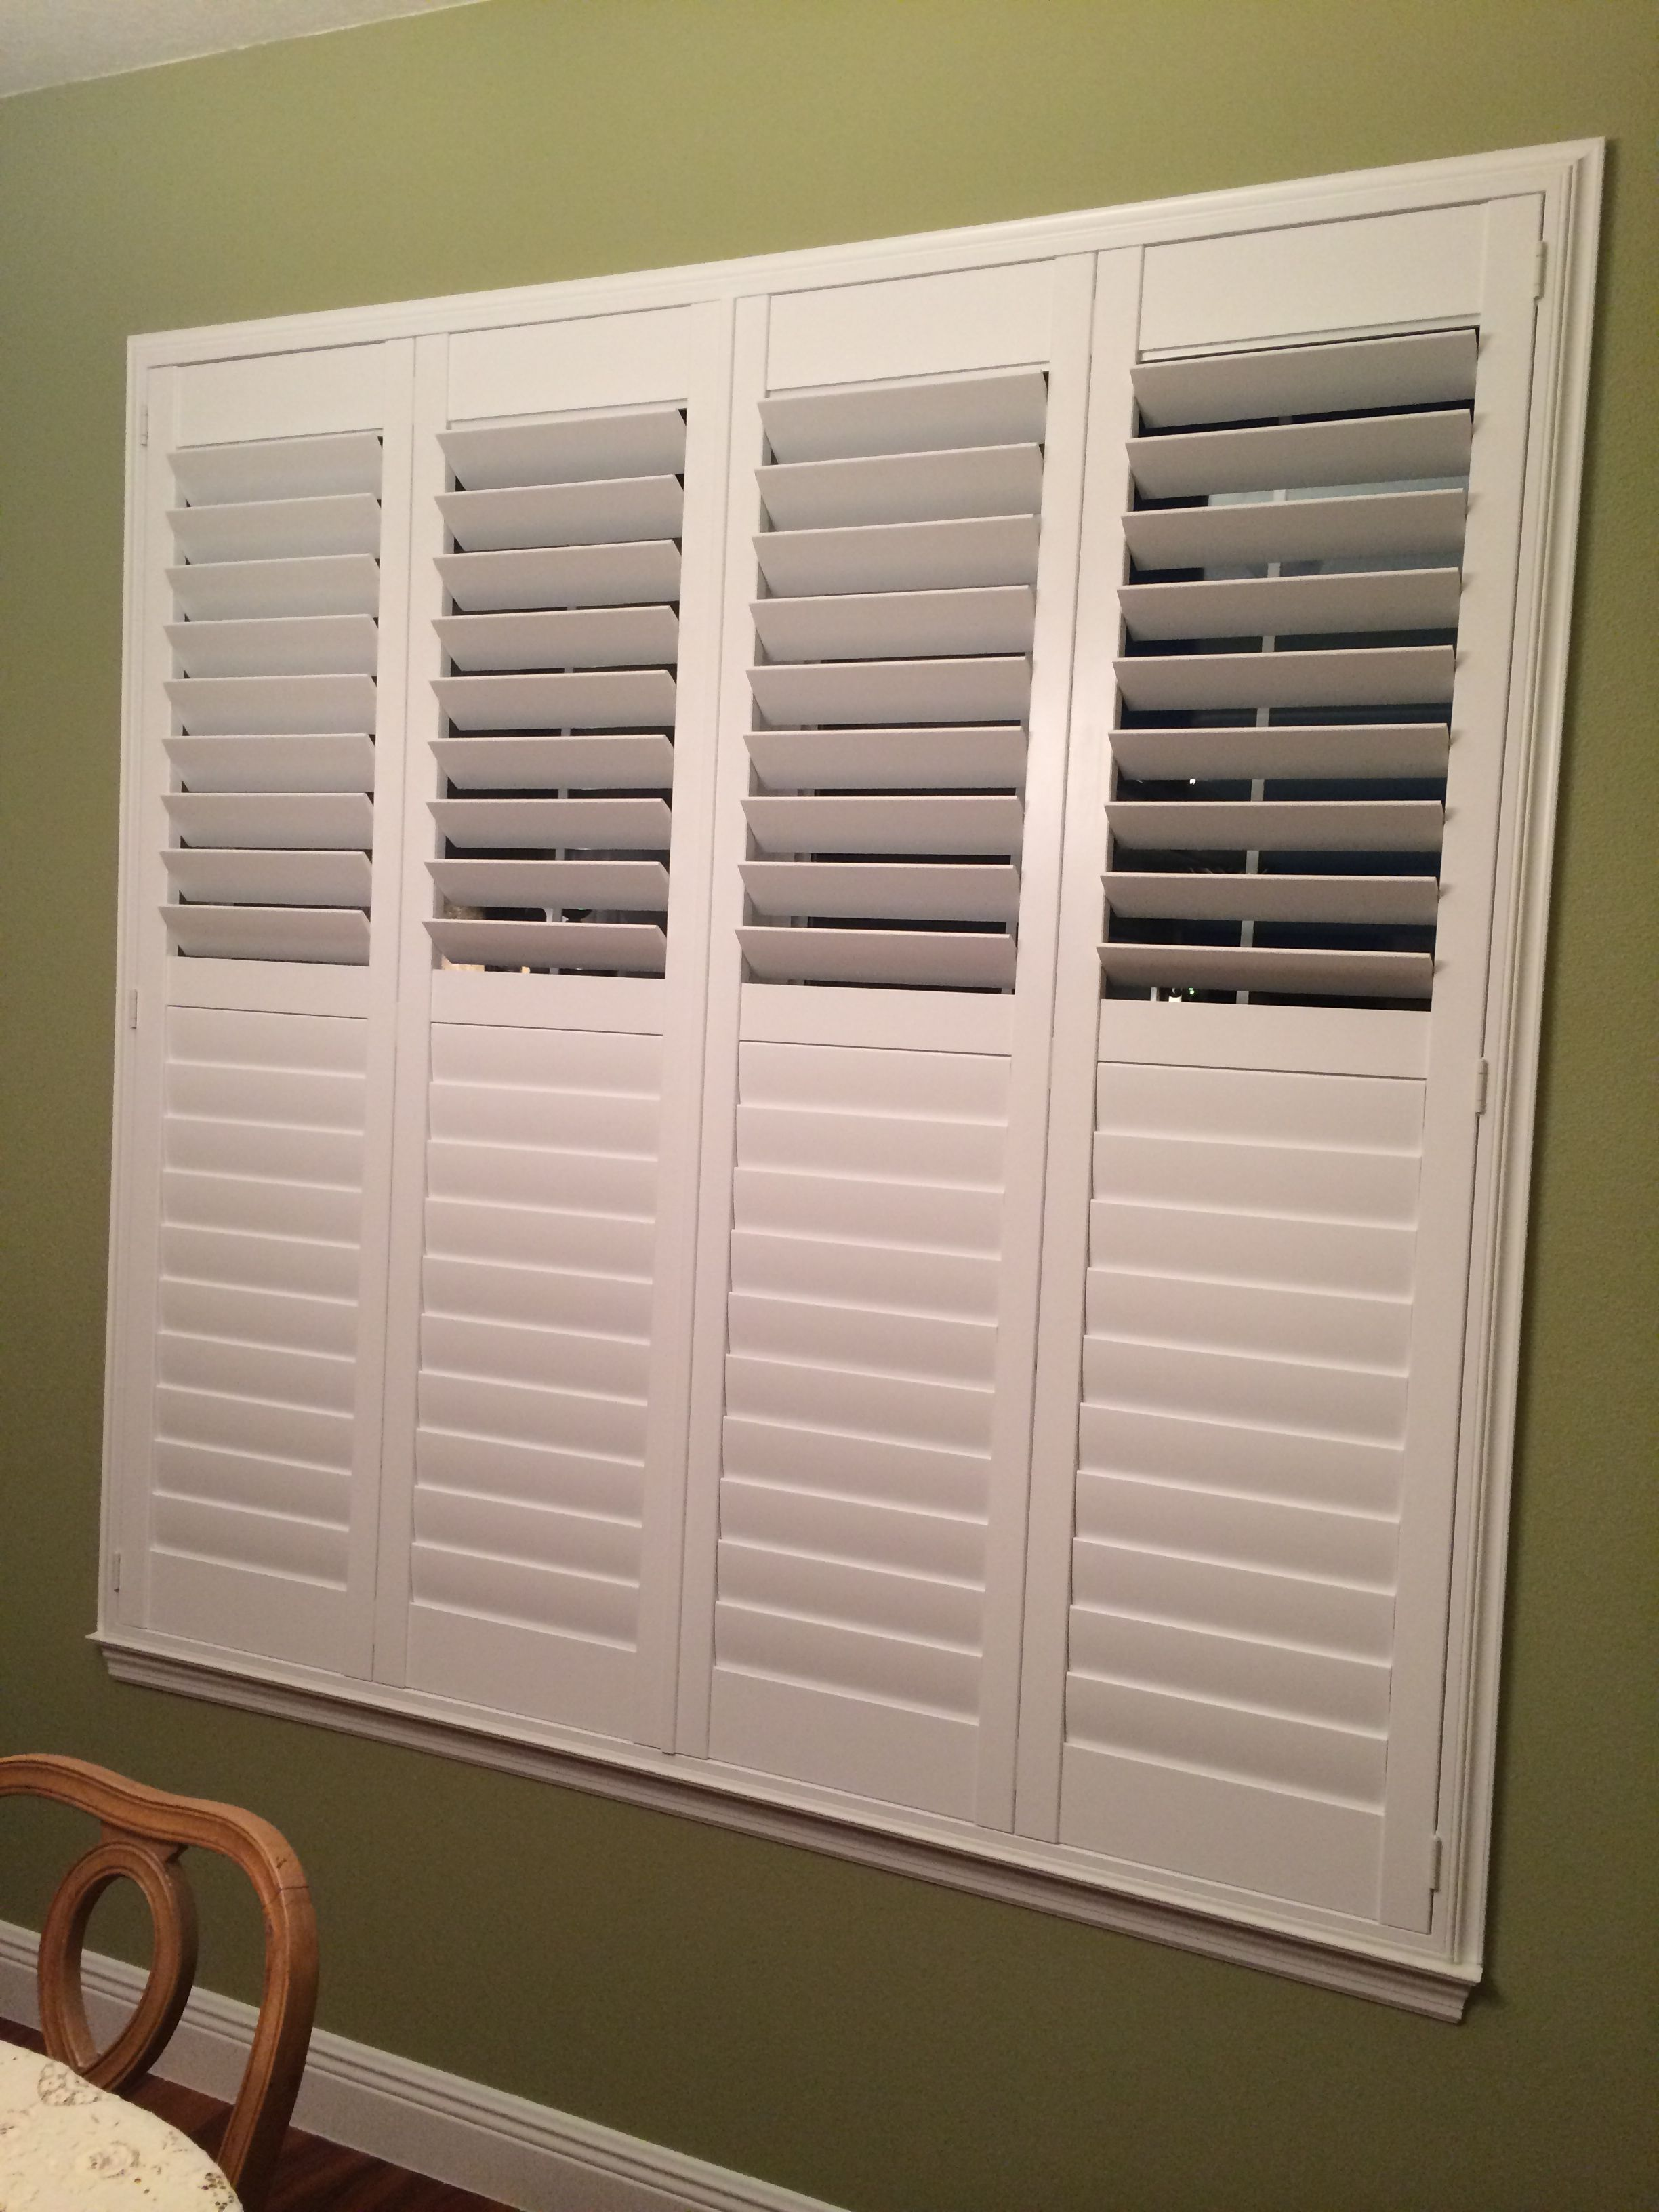 Plantation Shutters With A Divider Rail Allow More Control